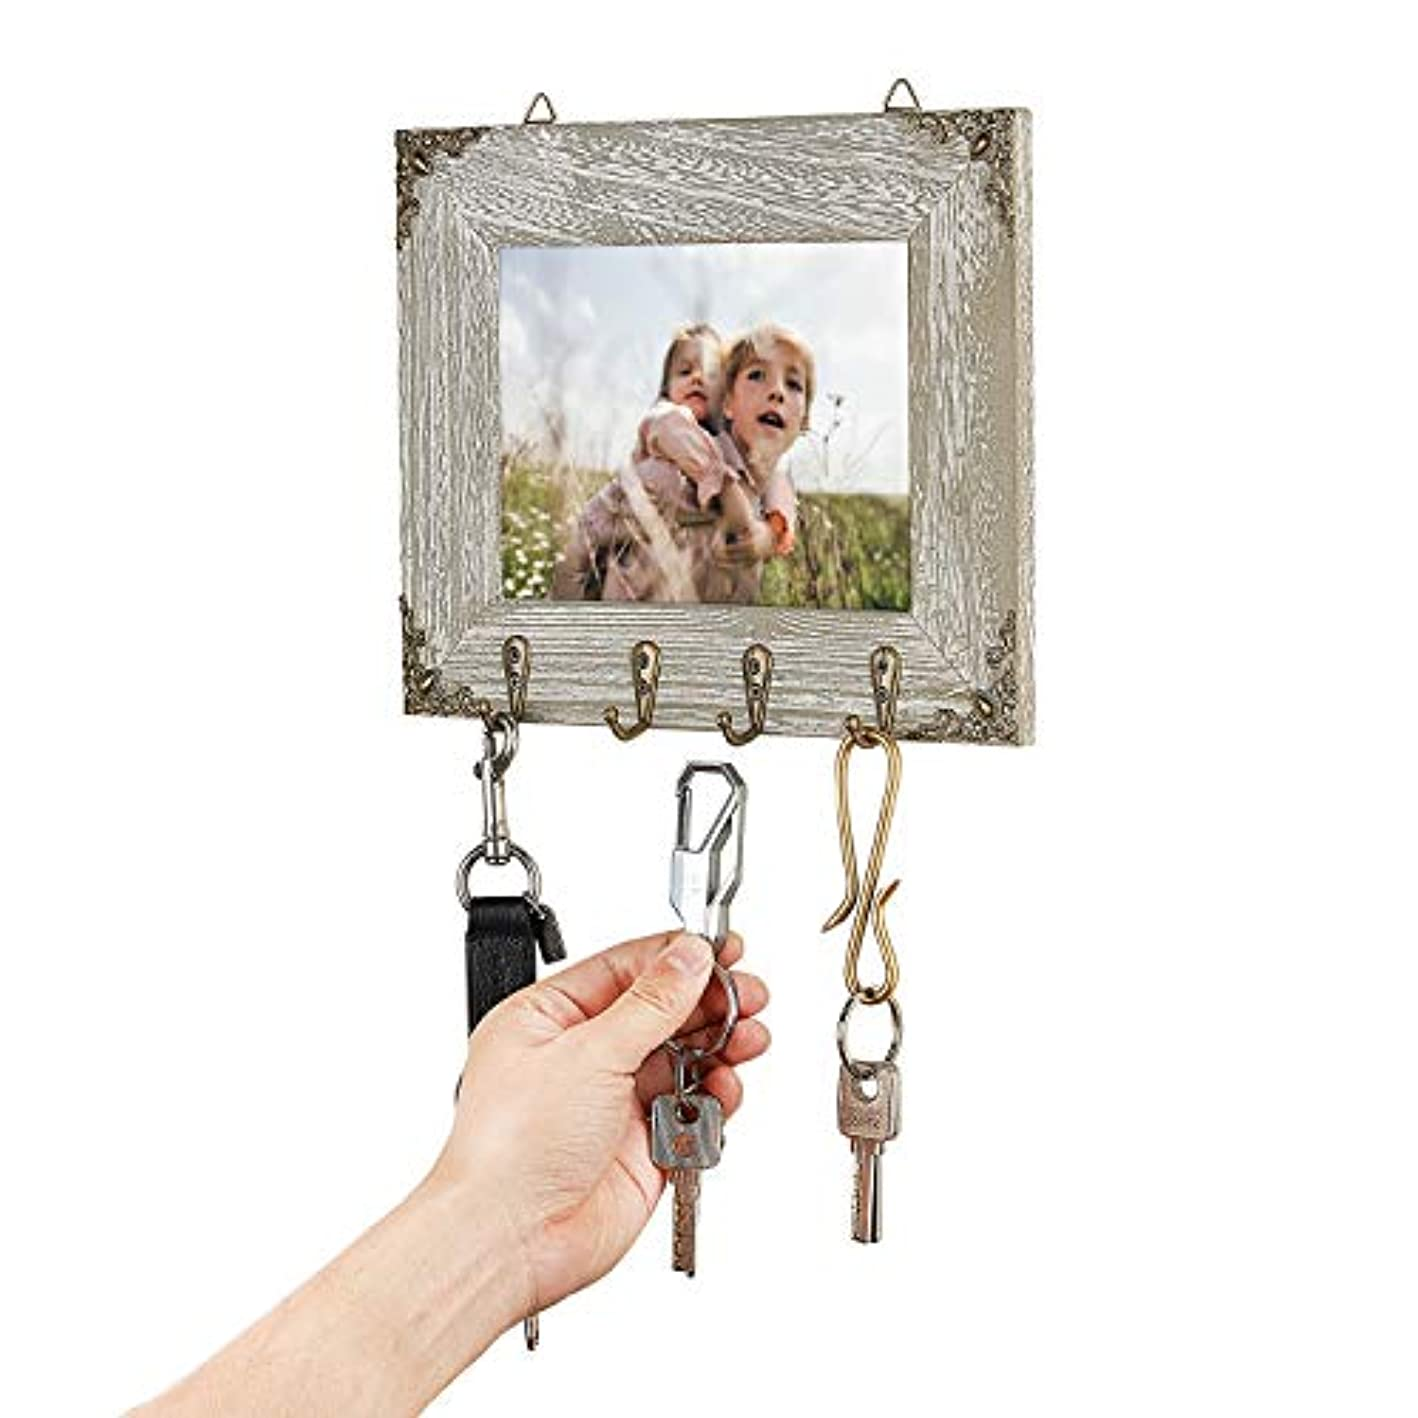 GomReck Key Holder with Wooden Photo Frame Wall Mounted Vintage Key Hook with 4 Rustic Hooks for Your Entryway, Kitchen, Bathroom.(Suitable for 5x7 inch Photos)